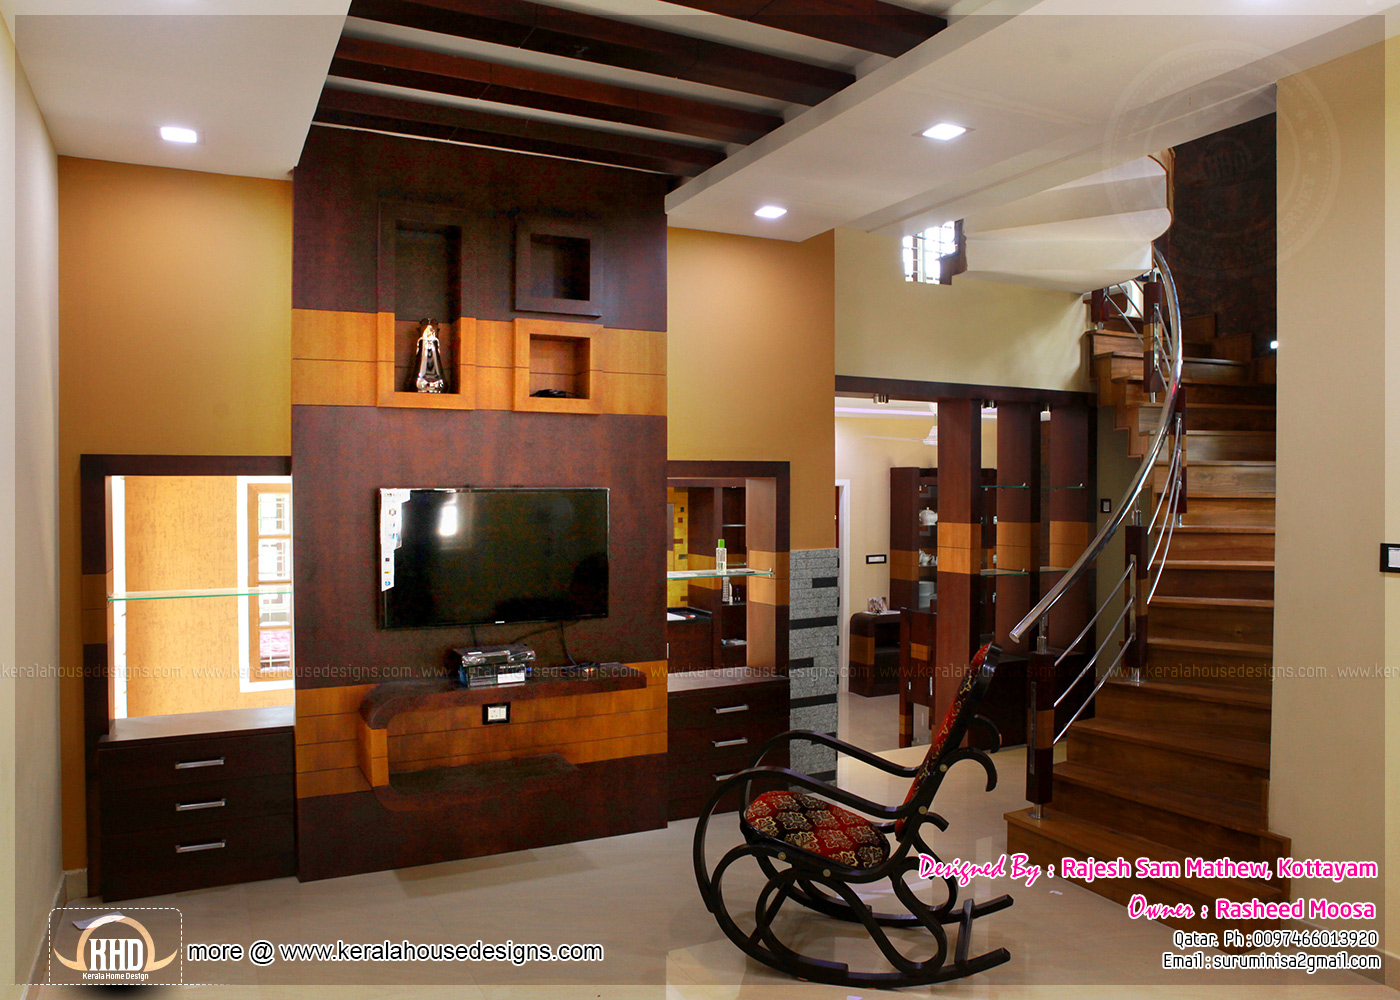 Kerala interior design with photos kerala home design for Home design sites